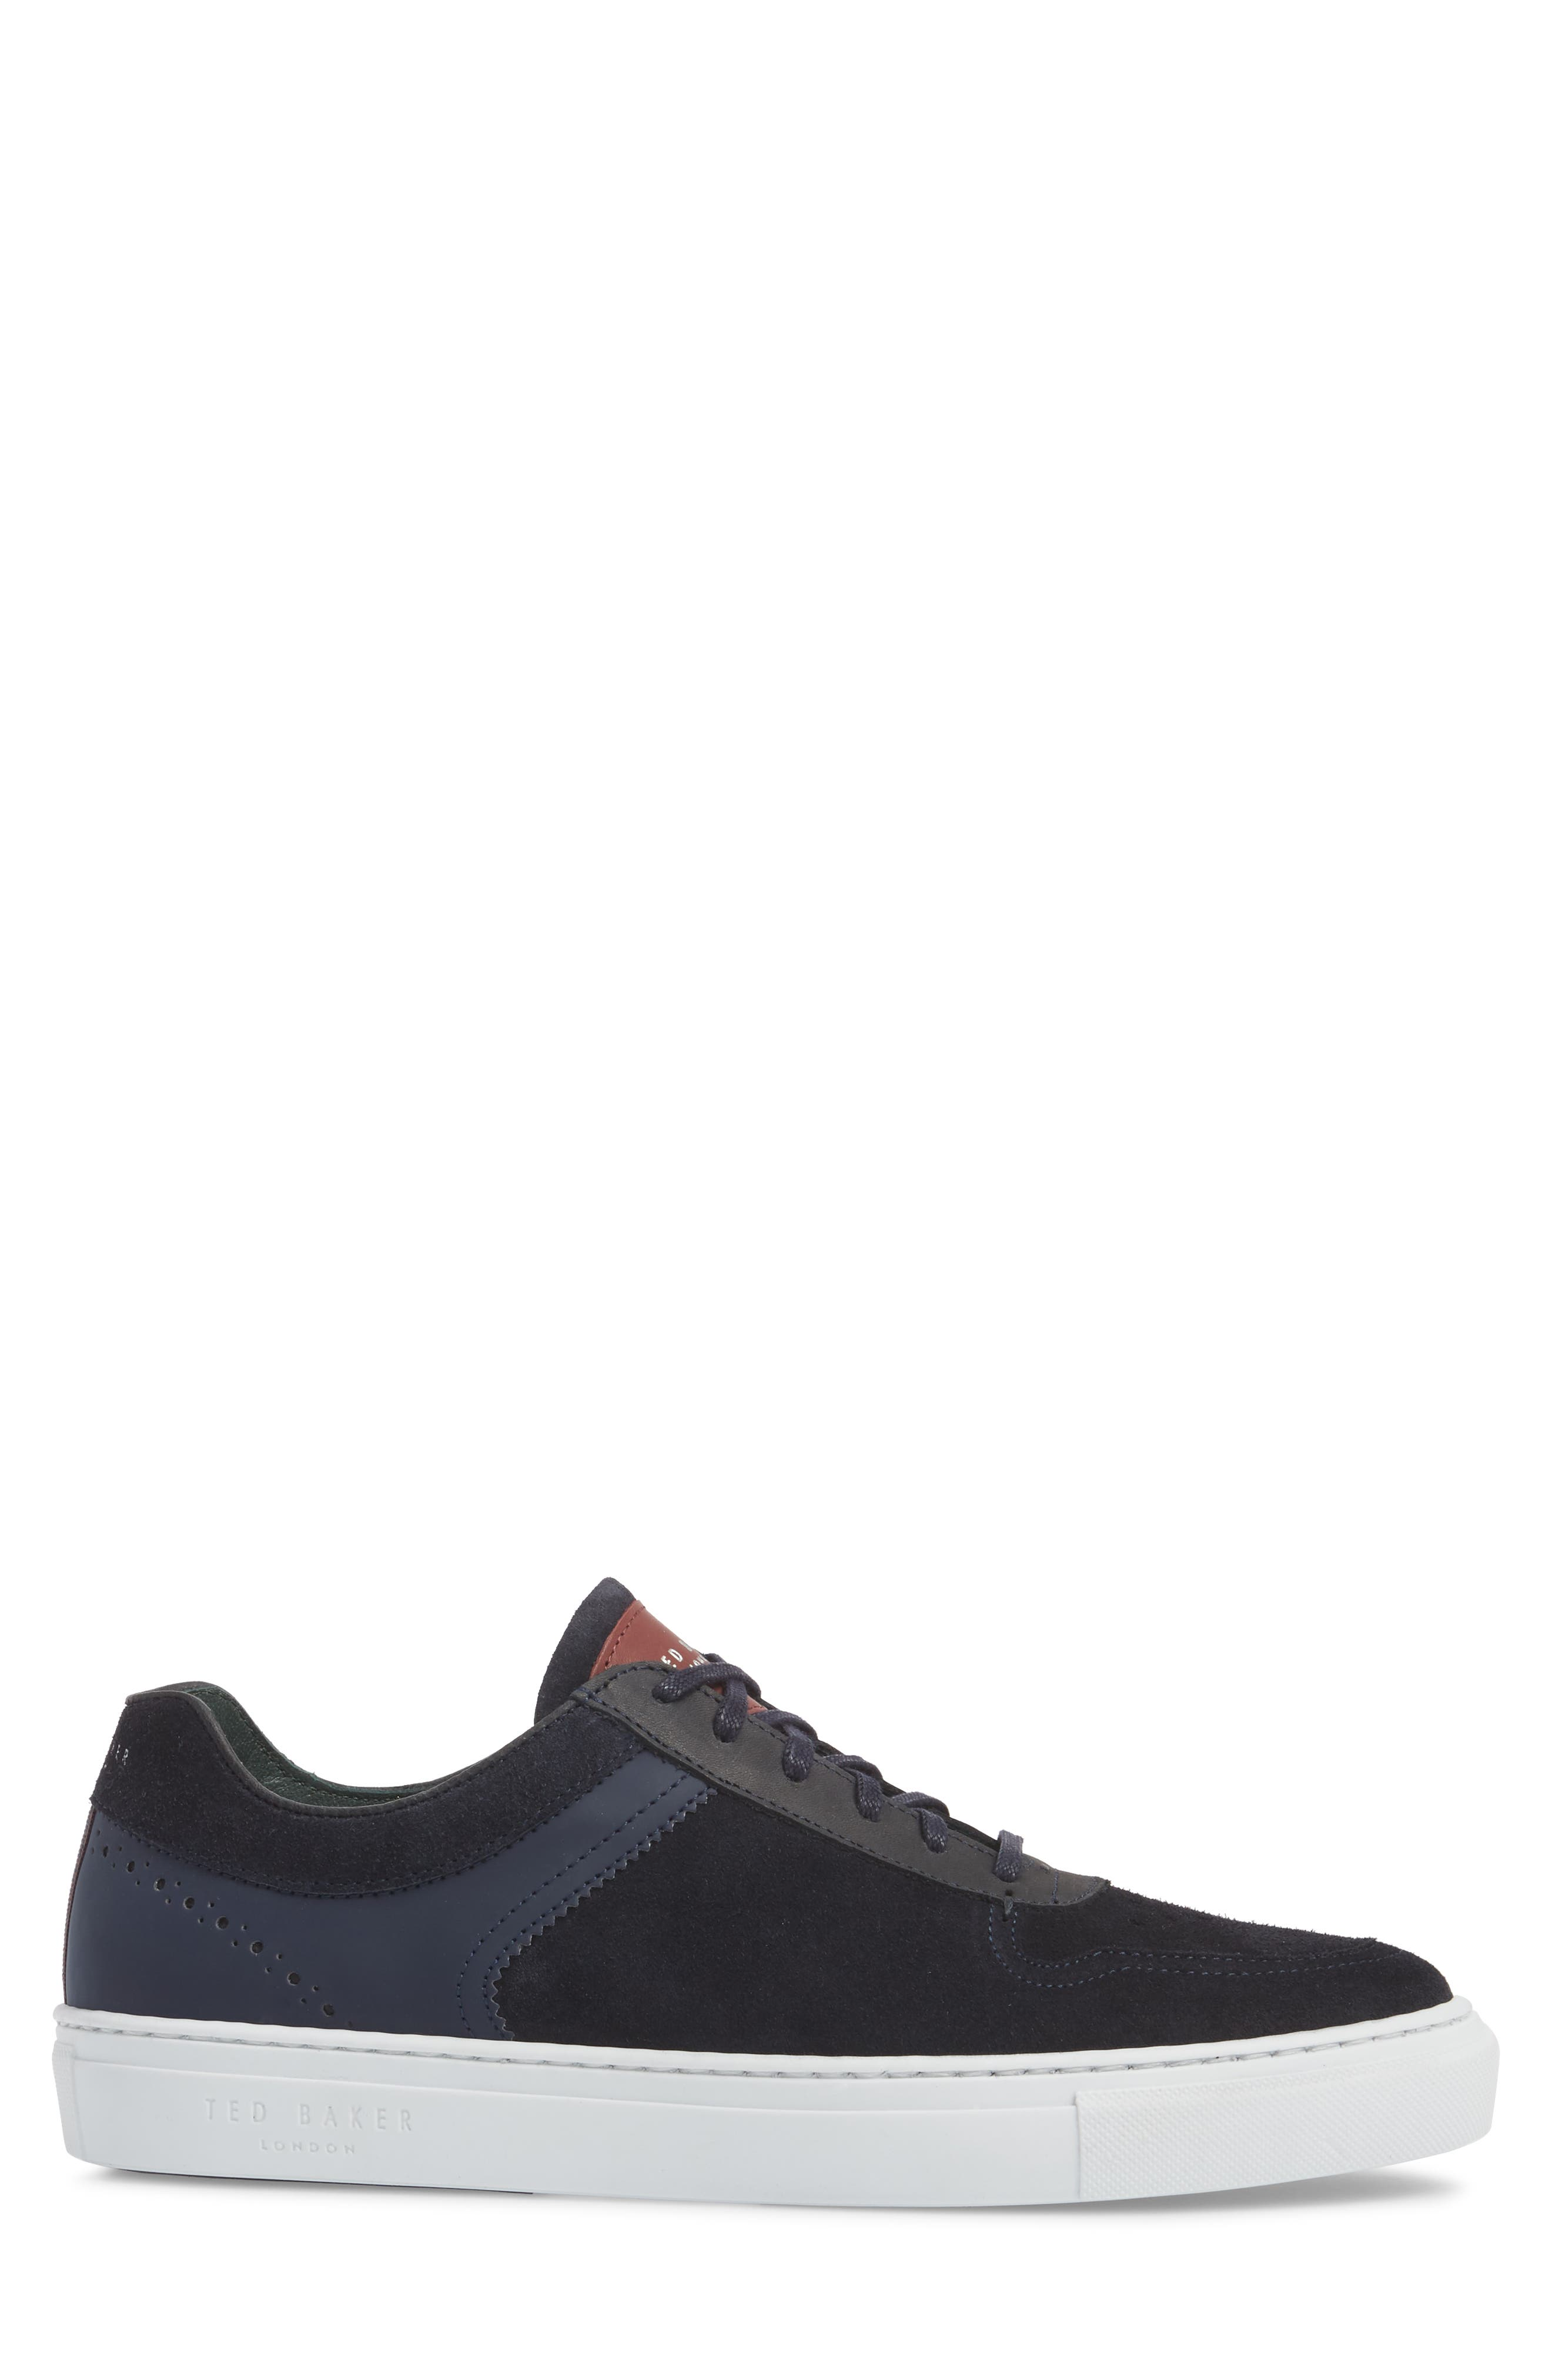 Burall Sneaker,                             Alternate thumbnail 3, color,                             Dark Blue Suede/ Textile